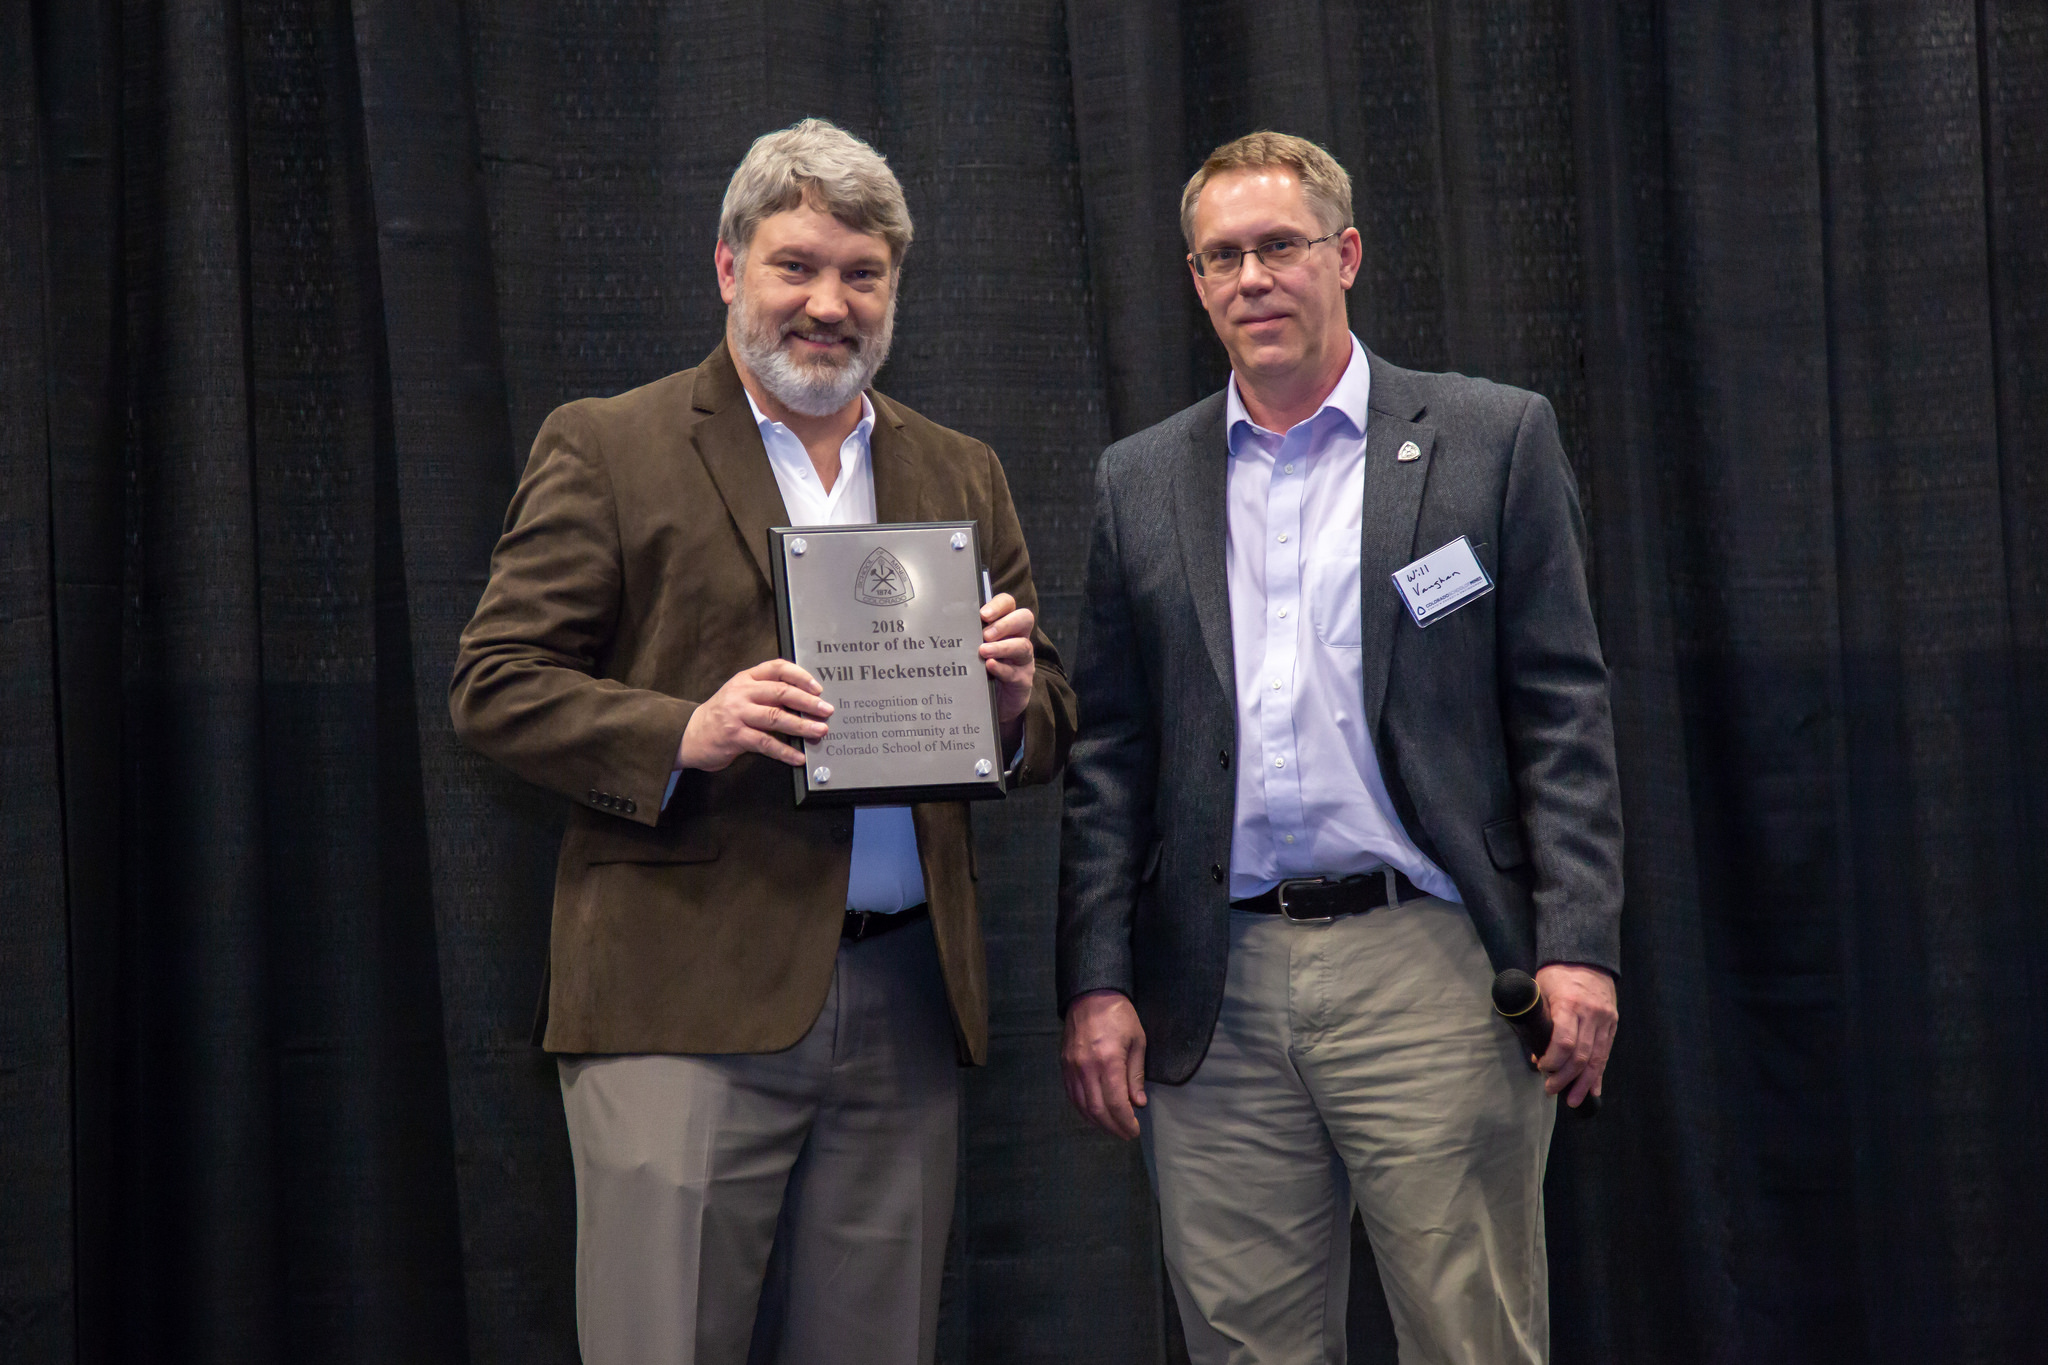 Wiliam Fleckenstein with his 2018 Mines Inventor of the Year award